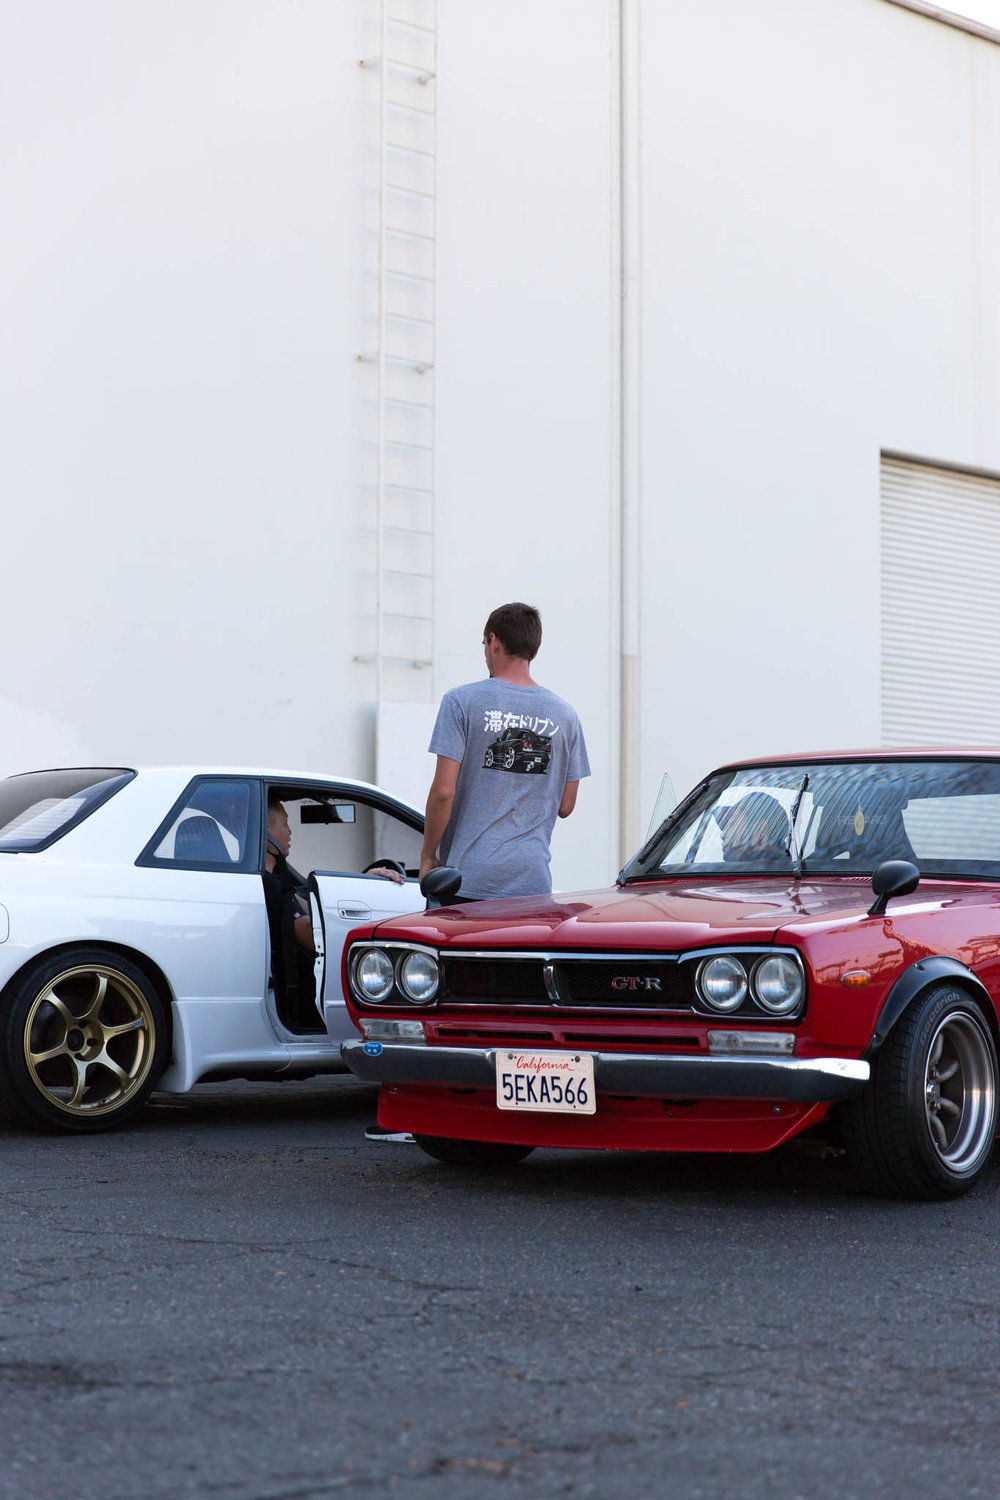 Stay_Driven_Skyline_Syndicate_Shoot_1-2.jpg